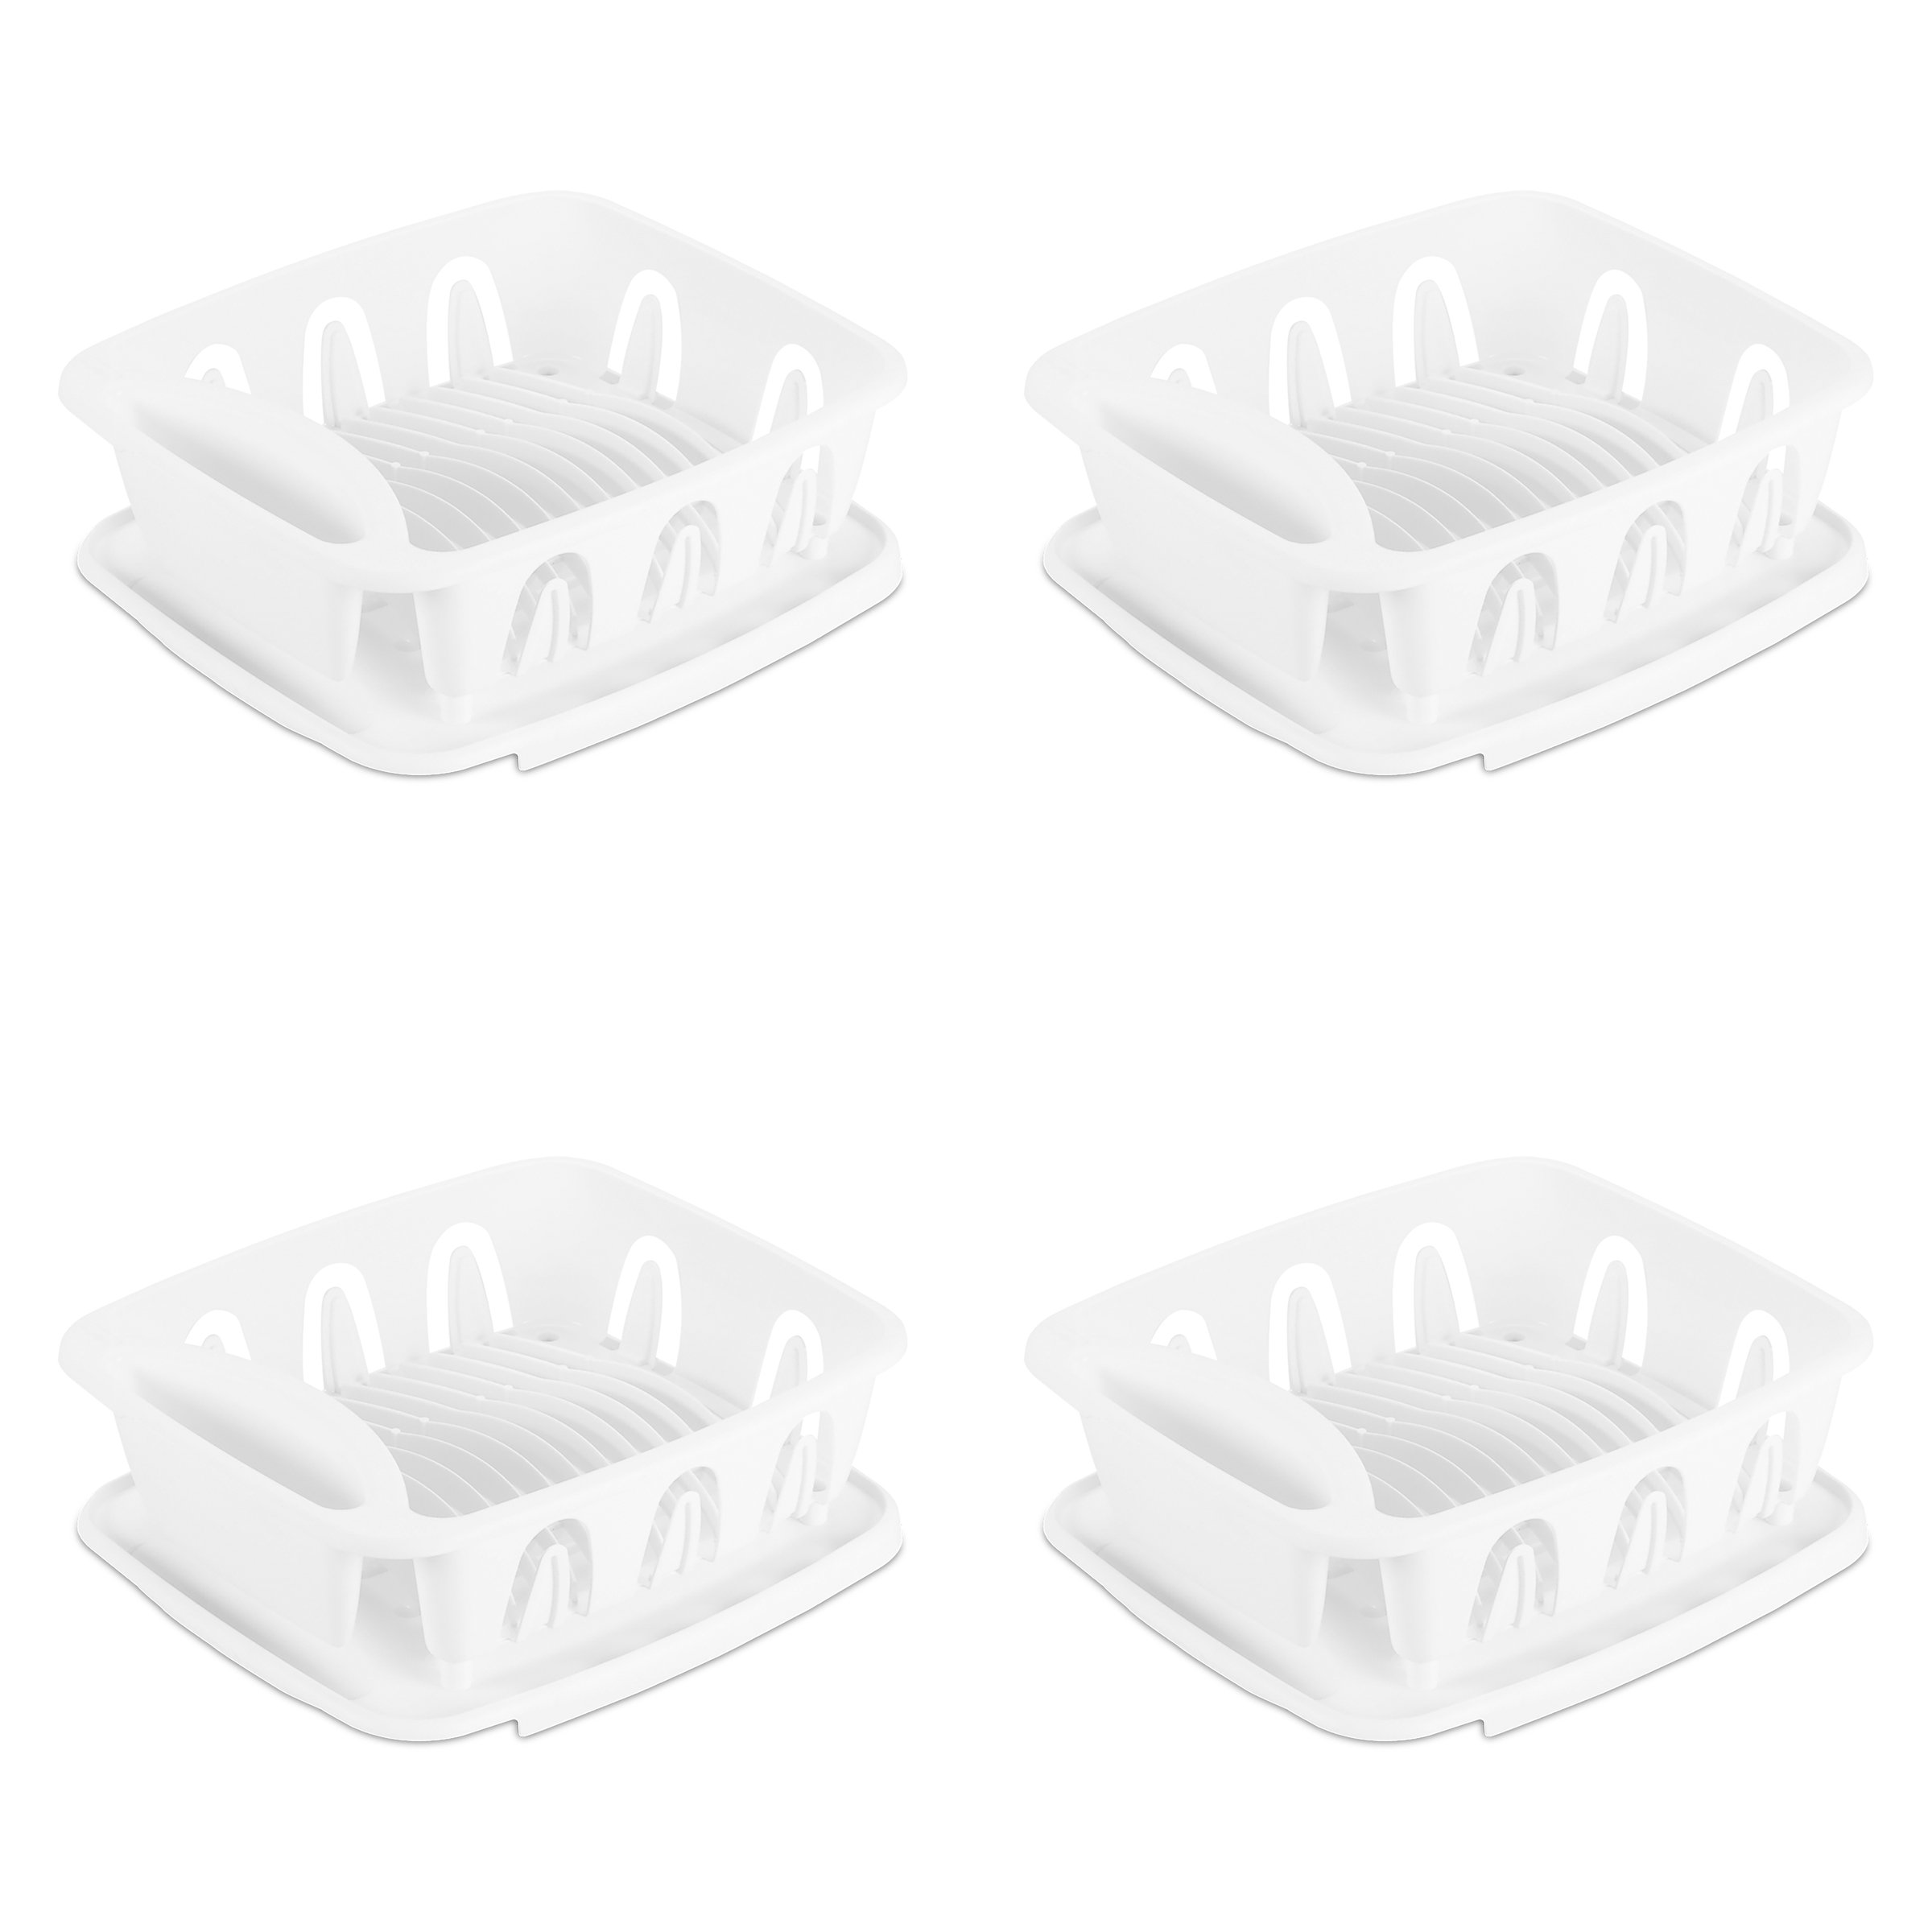 STERILITE 06368004 Small 2-Piece Sink Set, White, 4-Pack by STERILITE